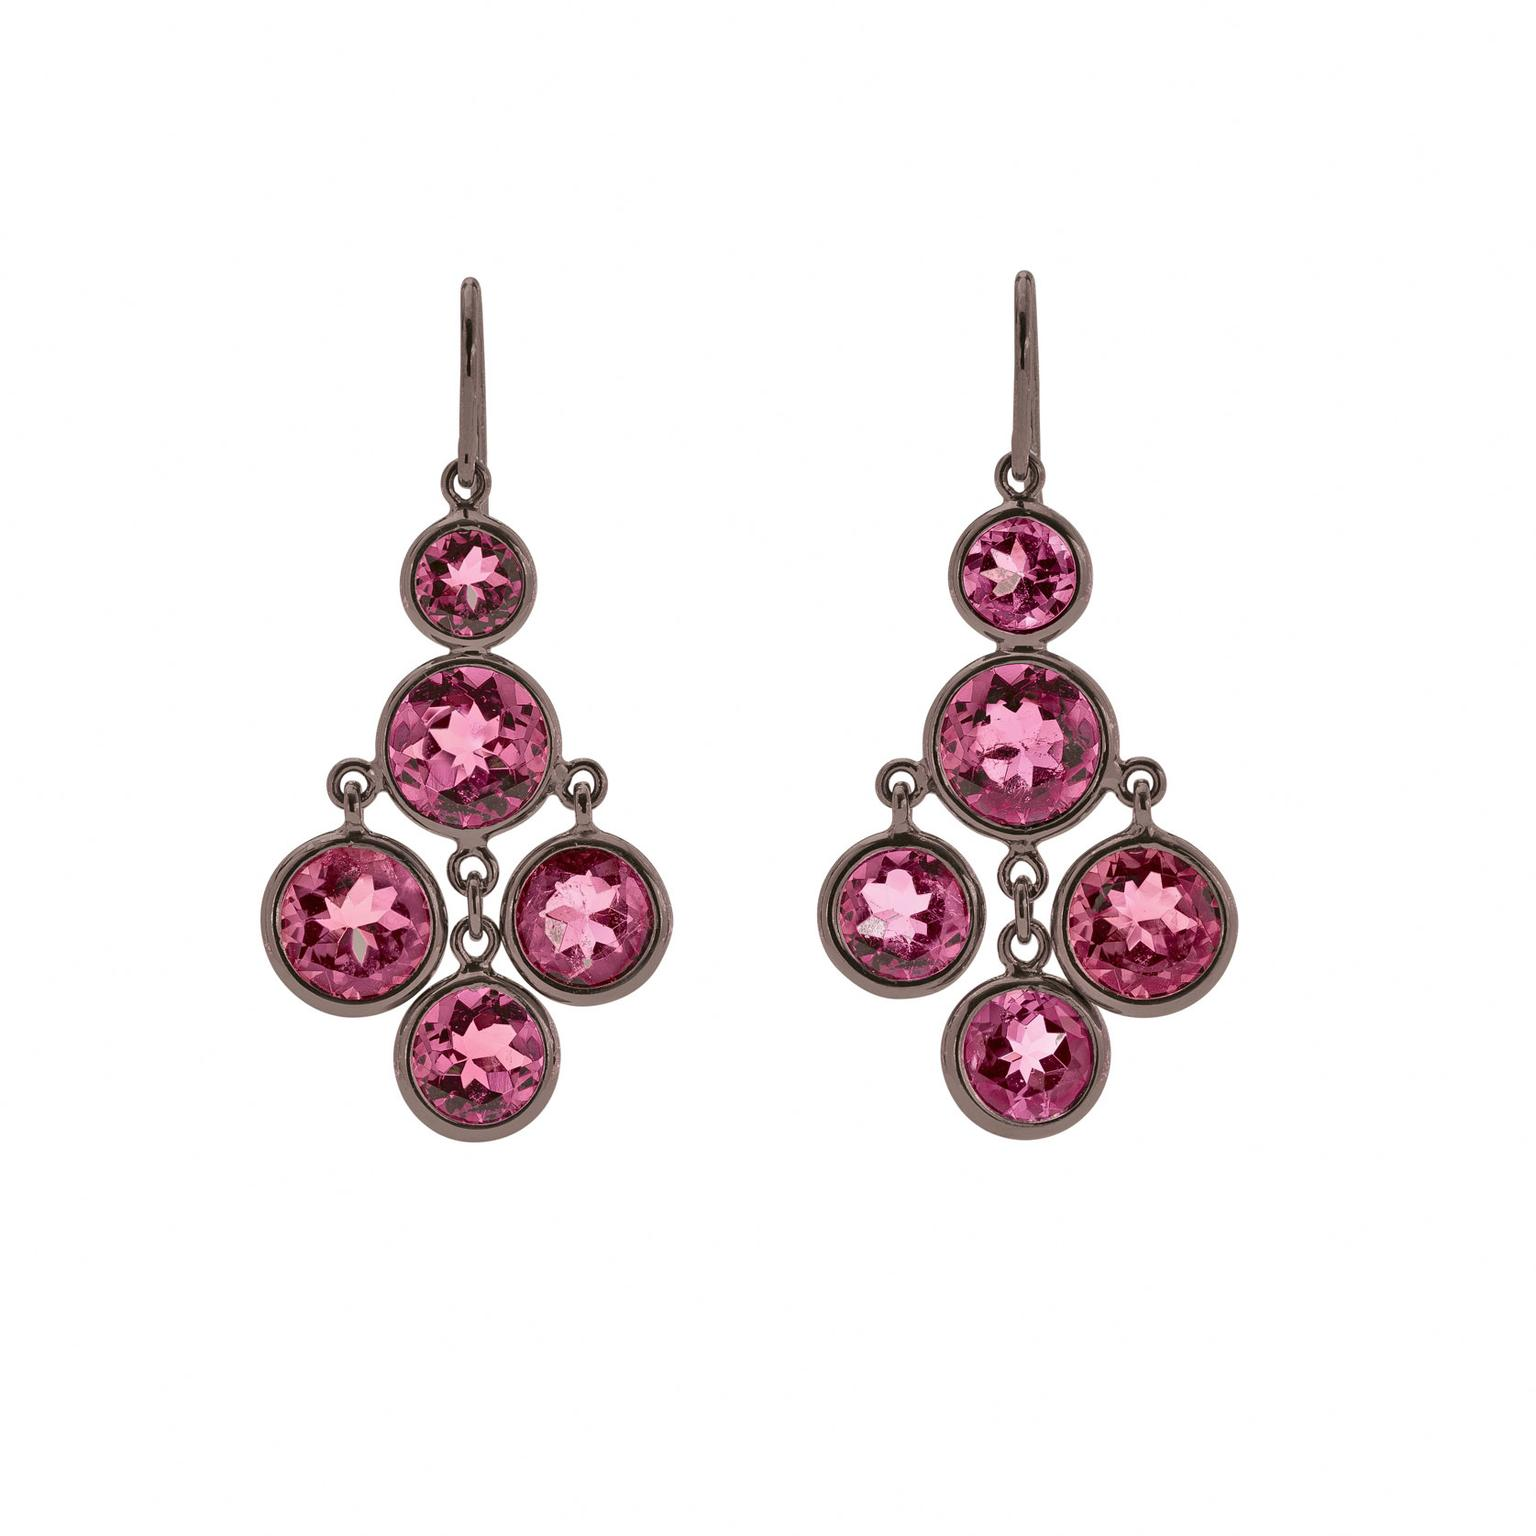 Solange Azagury-Partridge Darling Rose pink tourmaline earrings